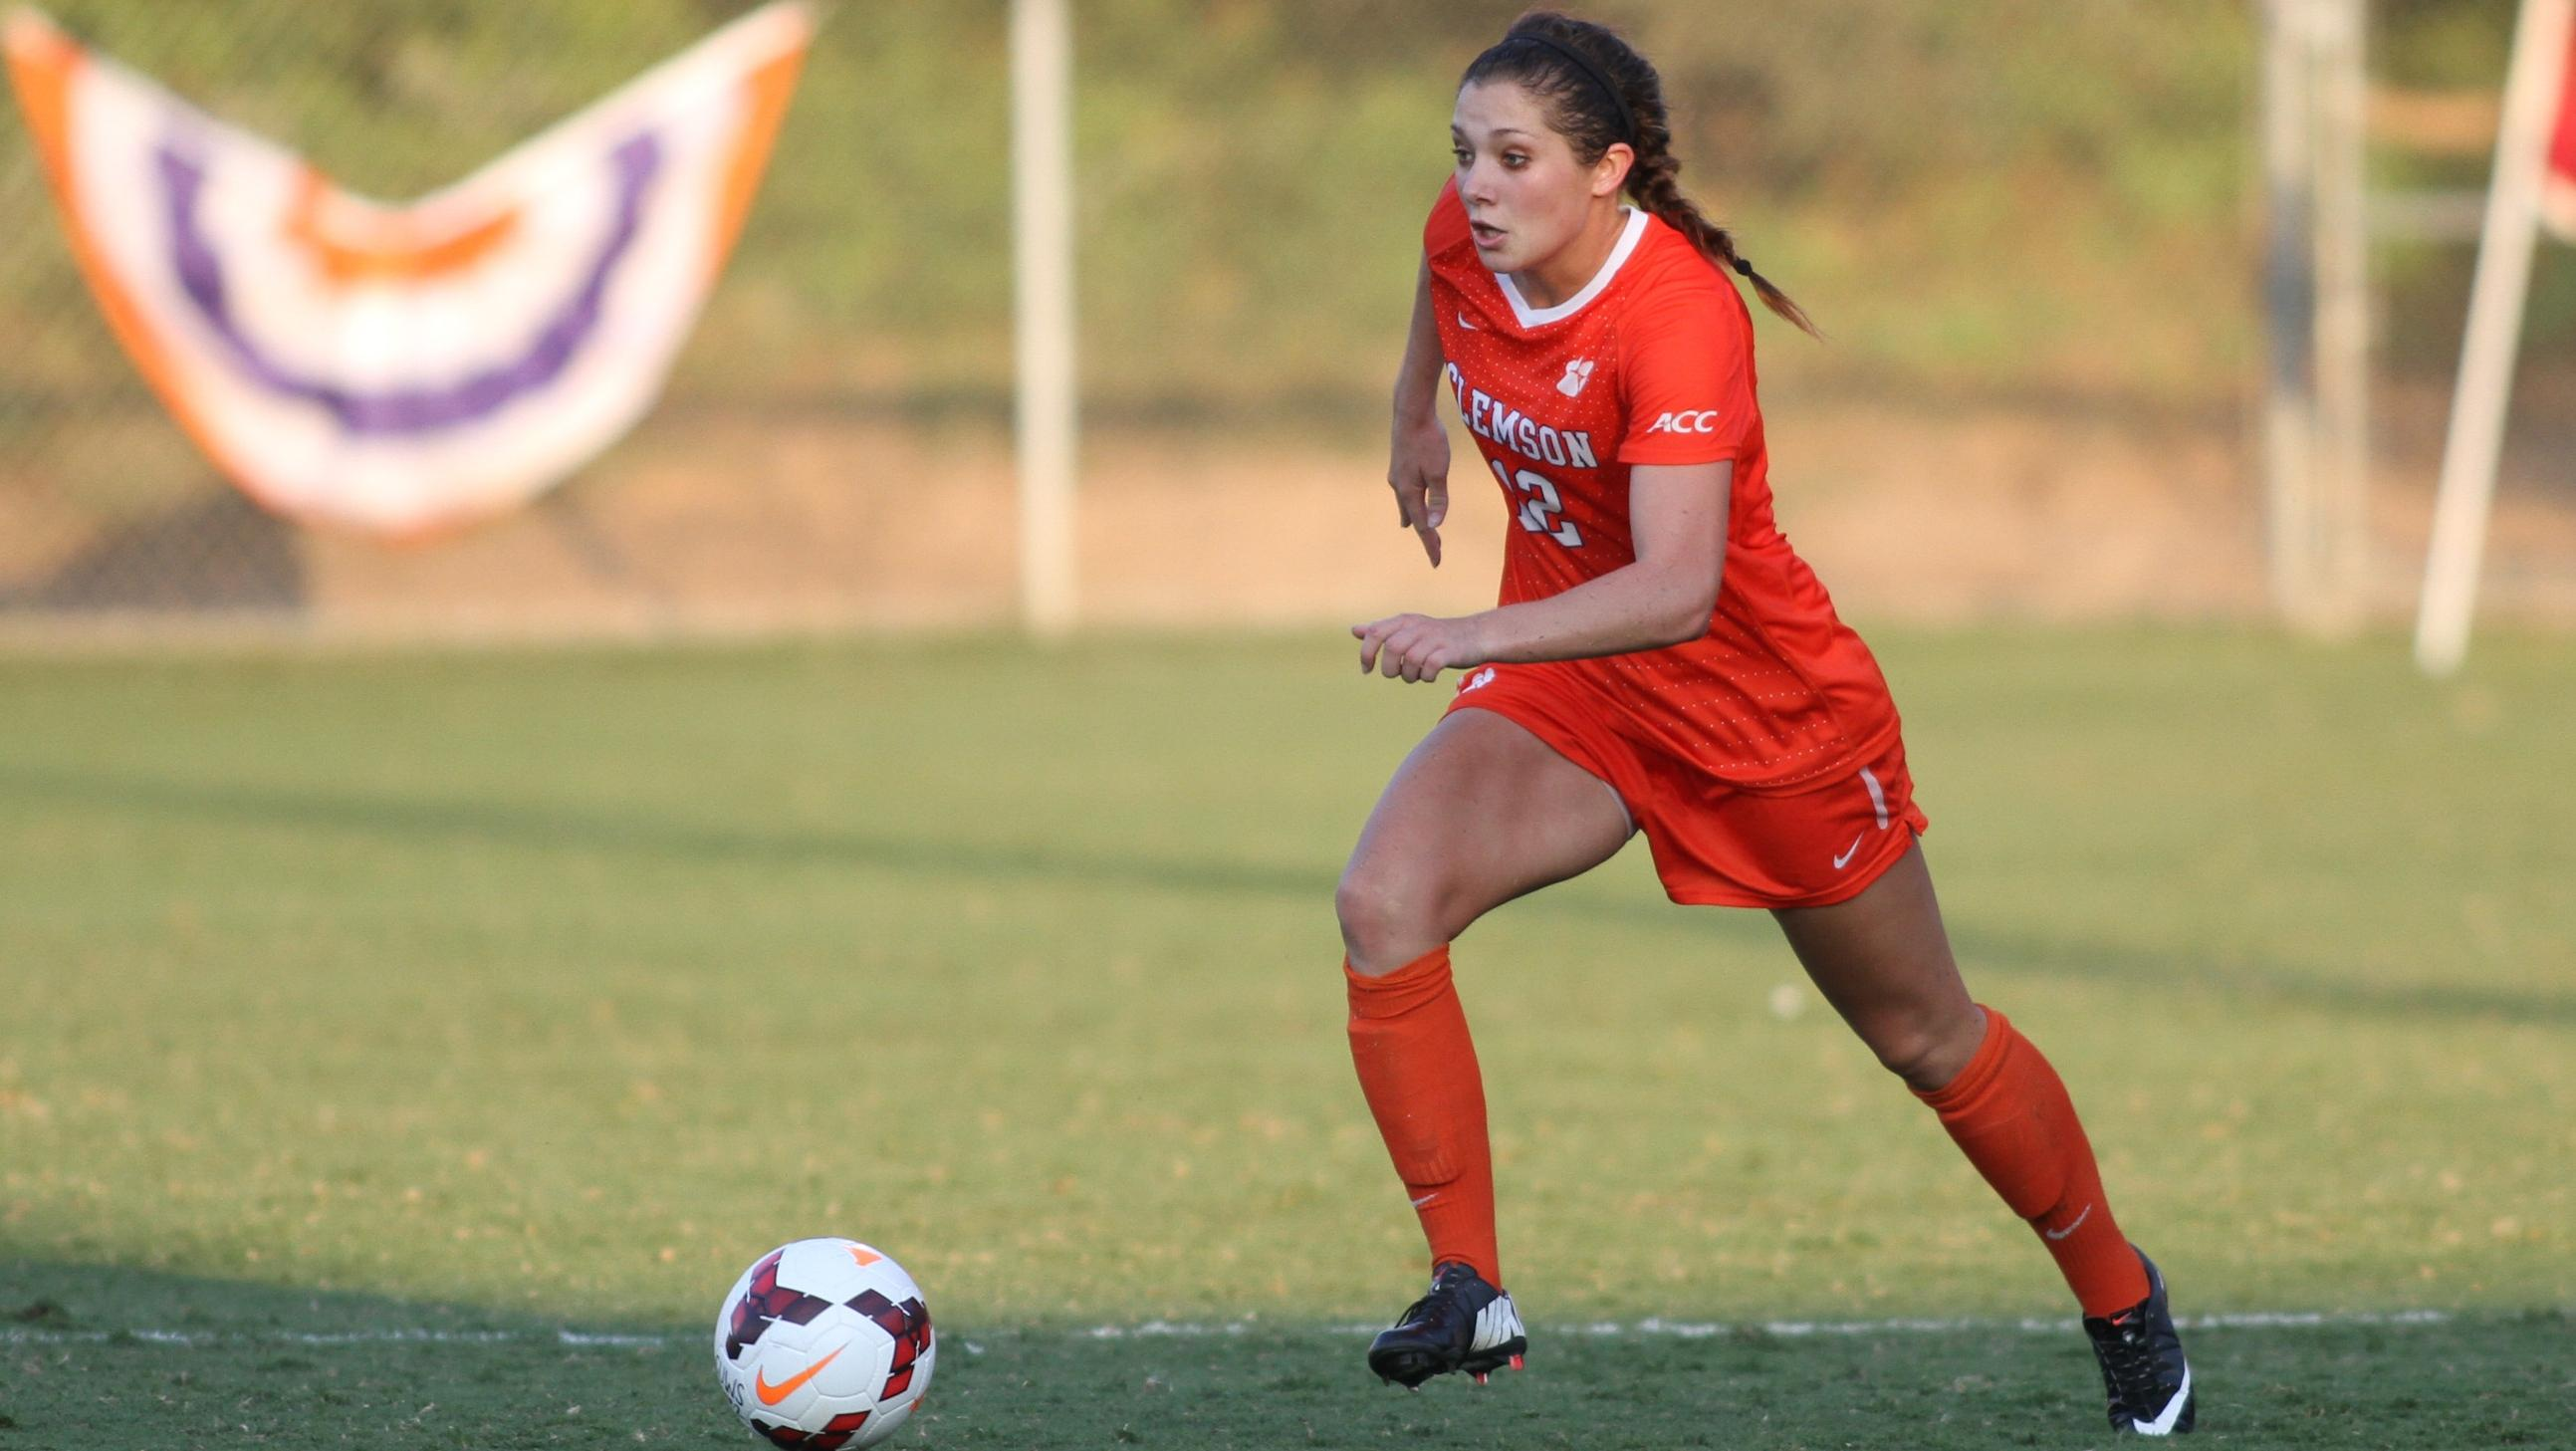 Reeve Named to Capital One Academic All-District Women's Soccer Team